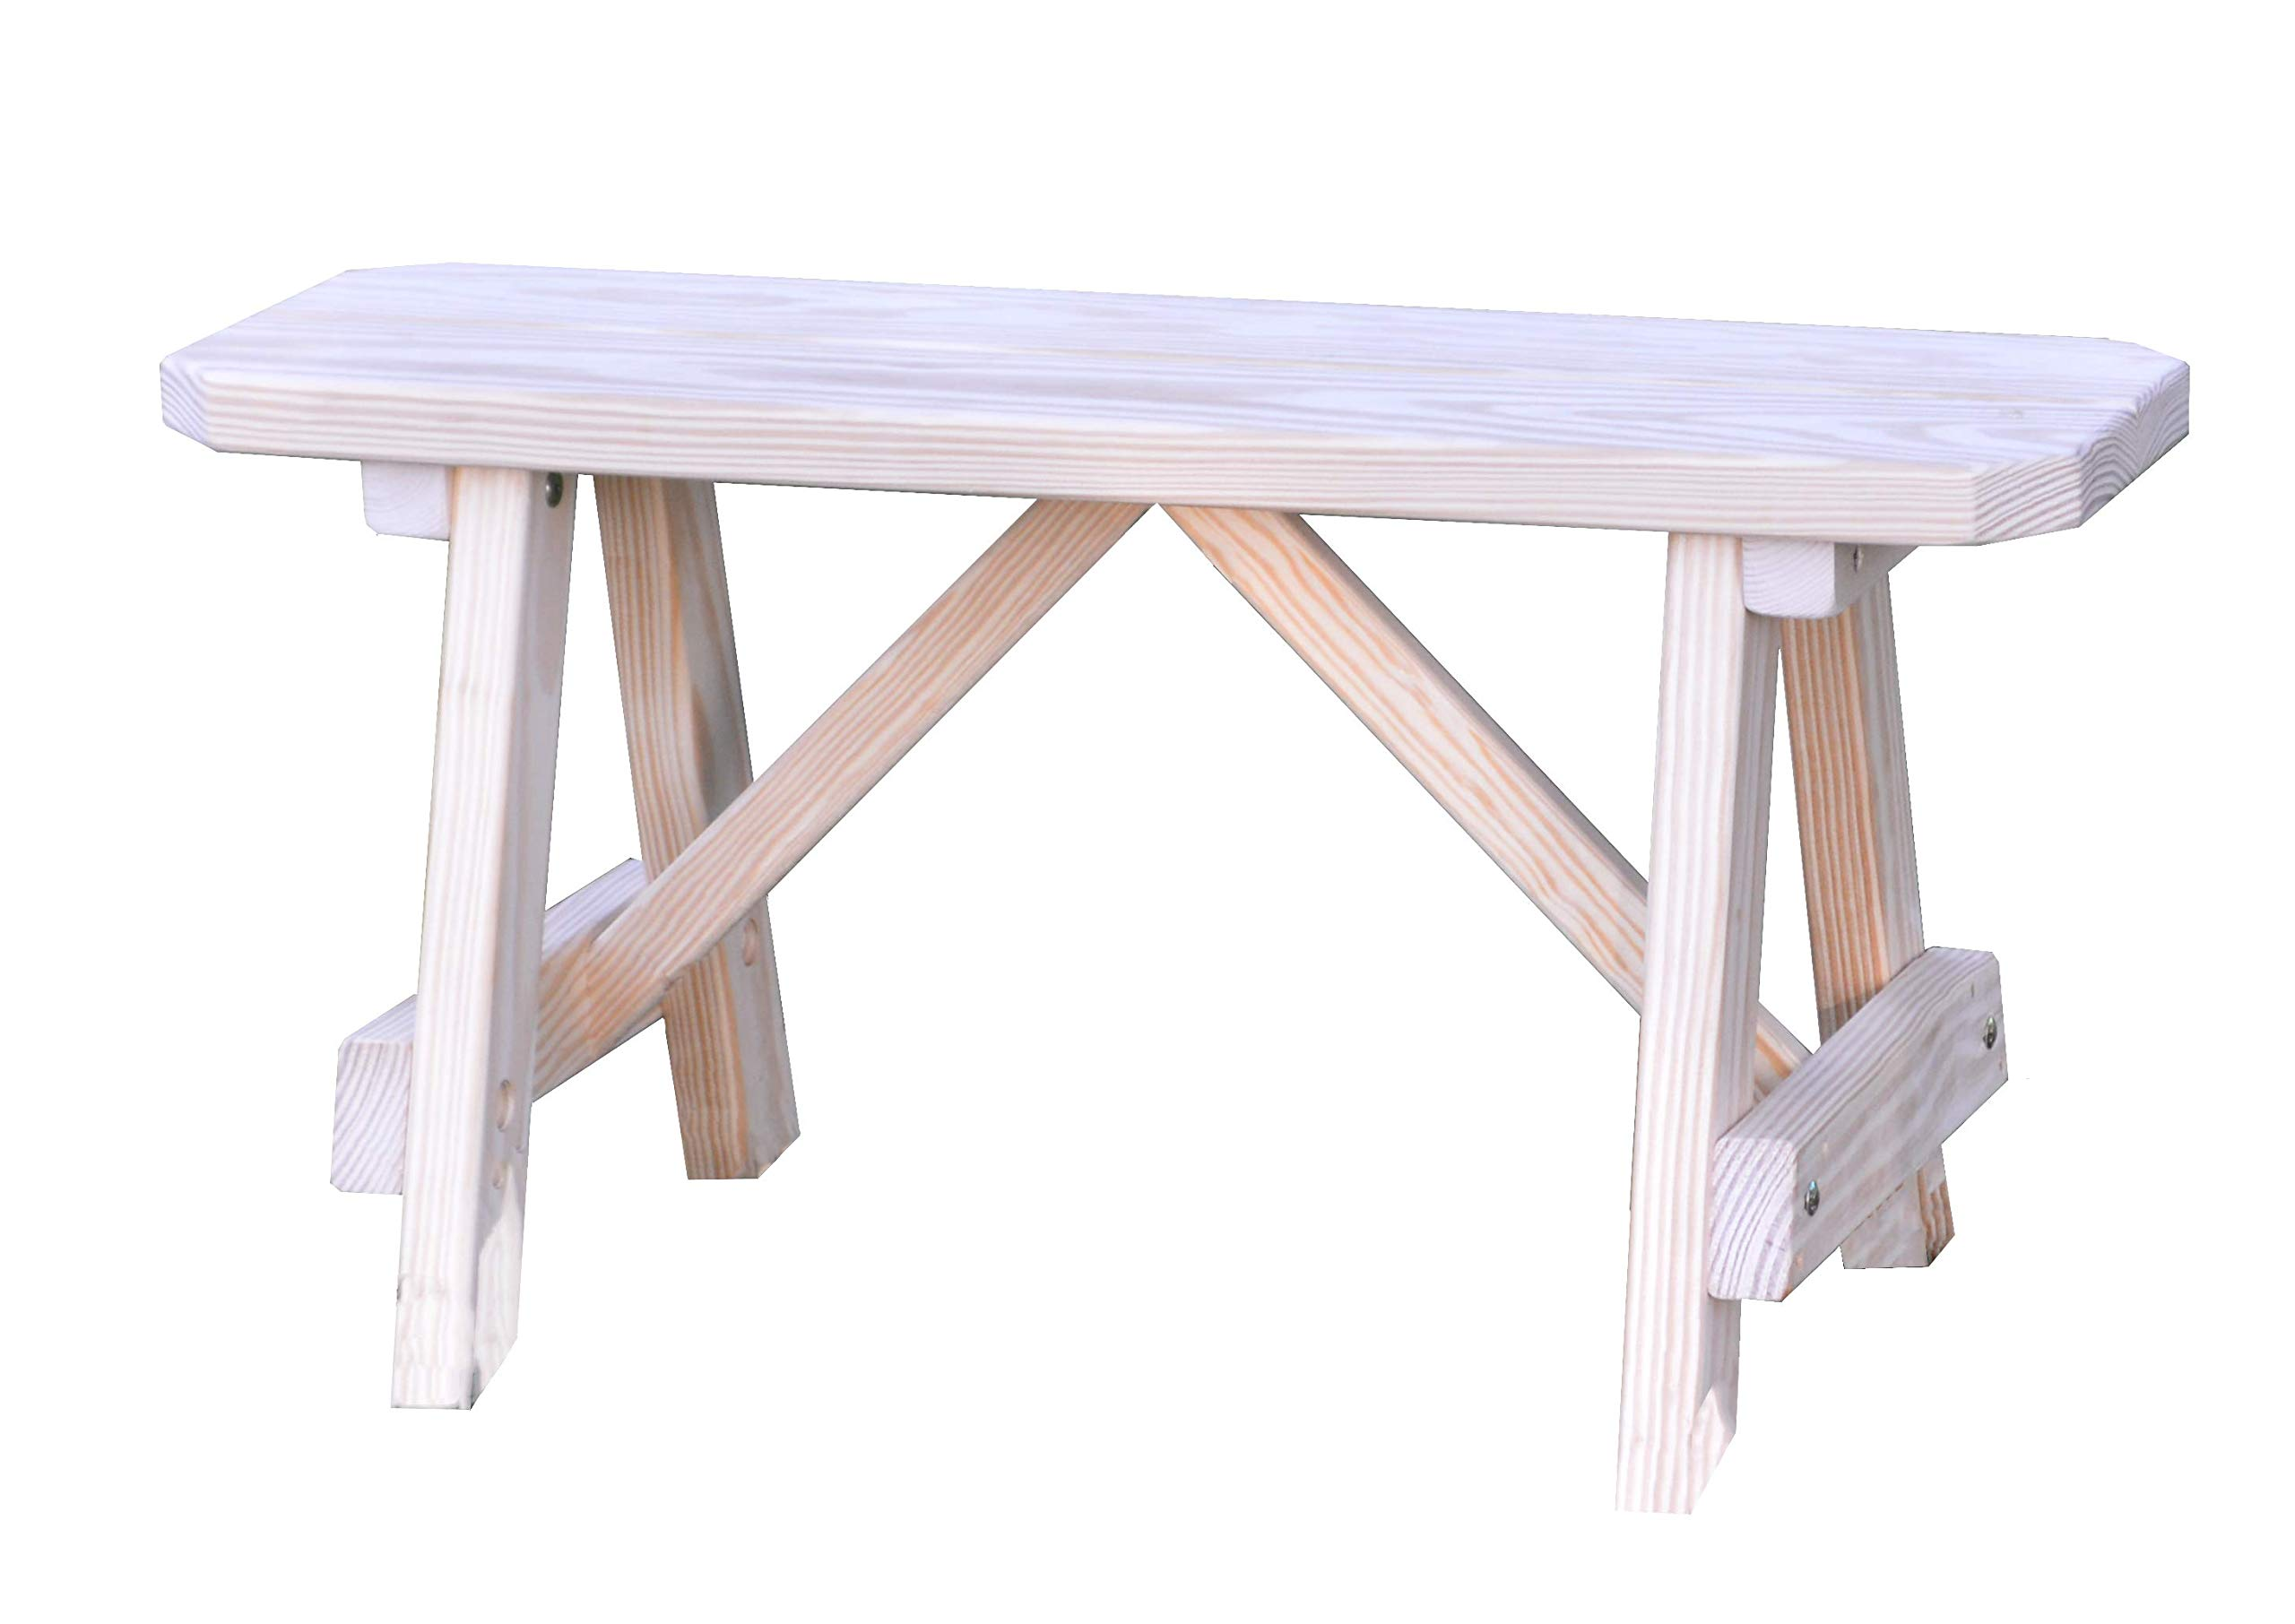 A & L Furniture Yellow Pine Traditional Bench, 2', Unfinished by A&L Furniture Co.